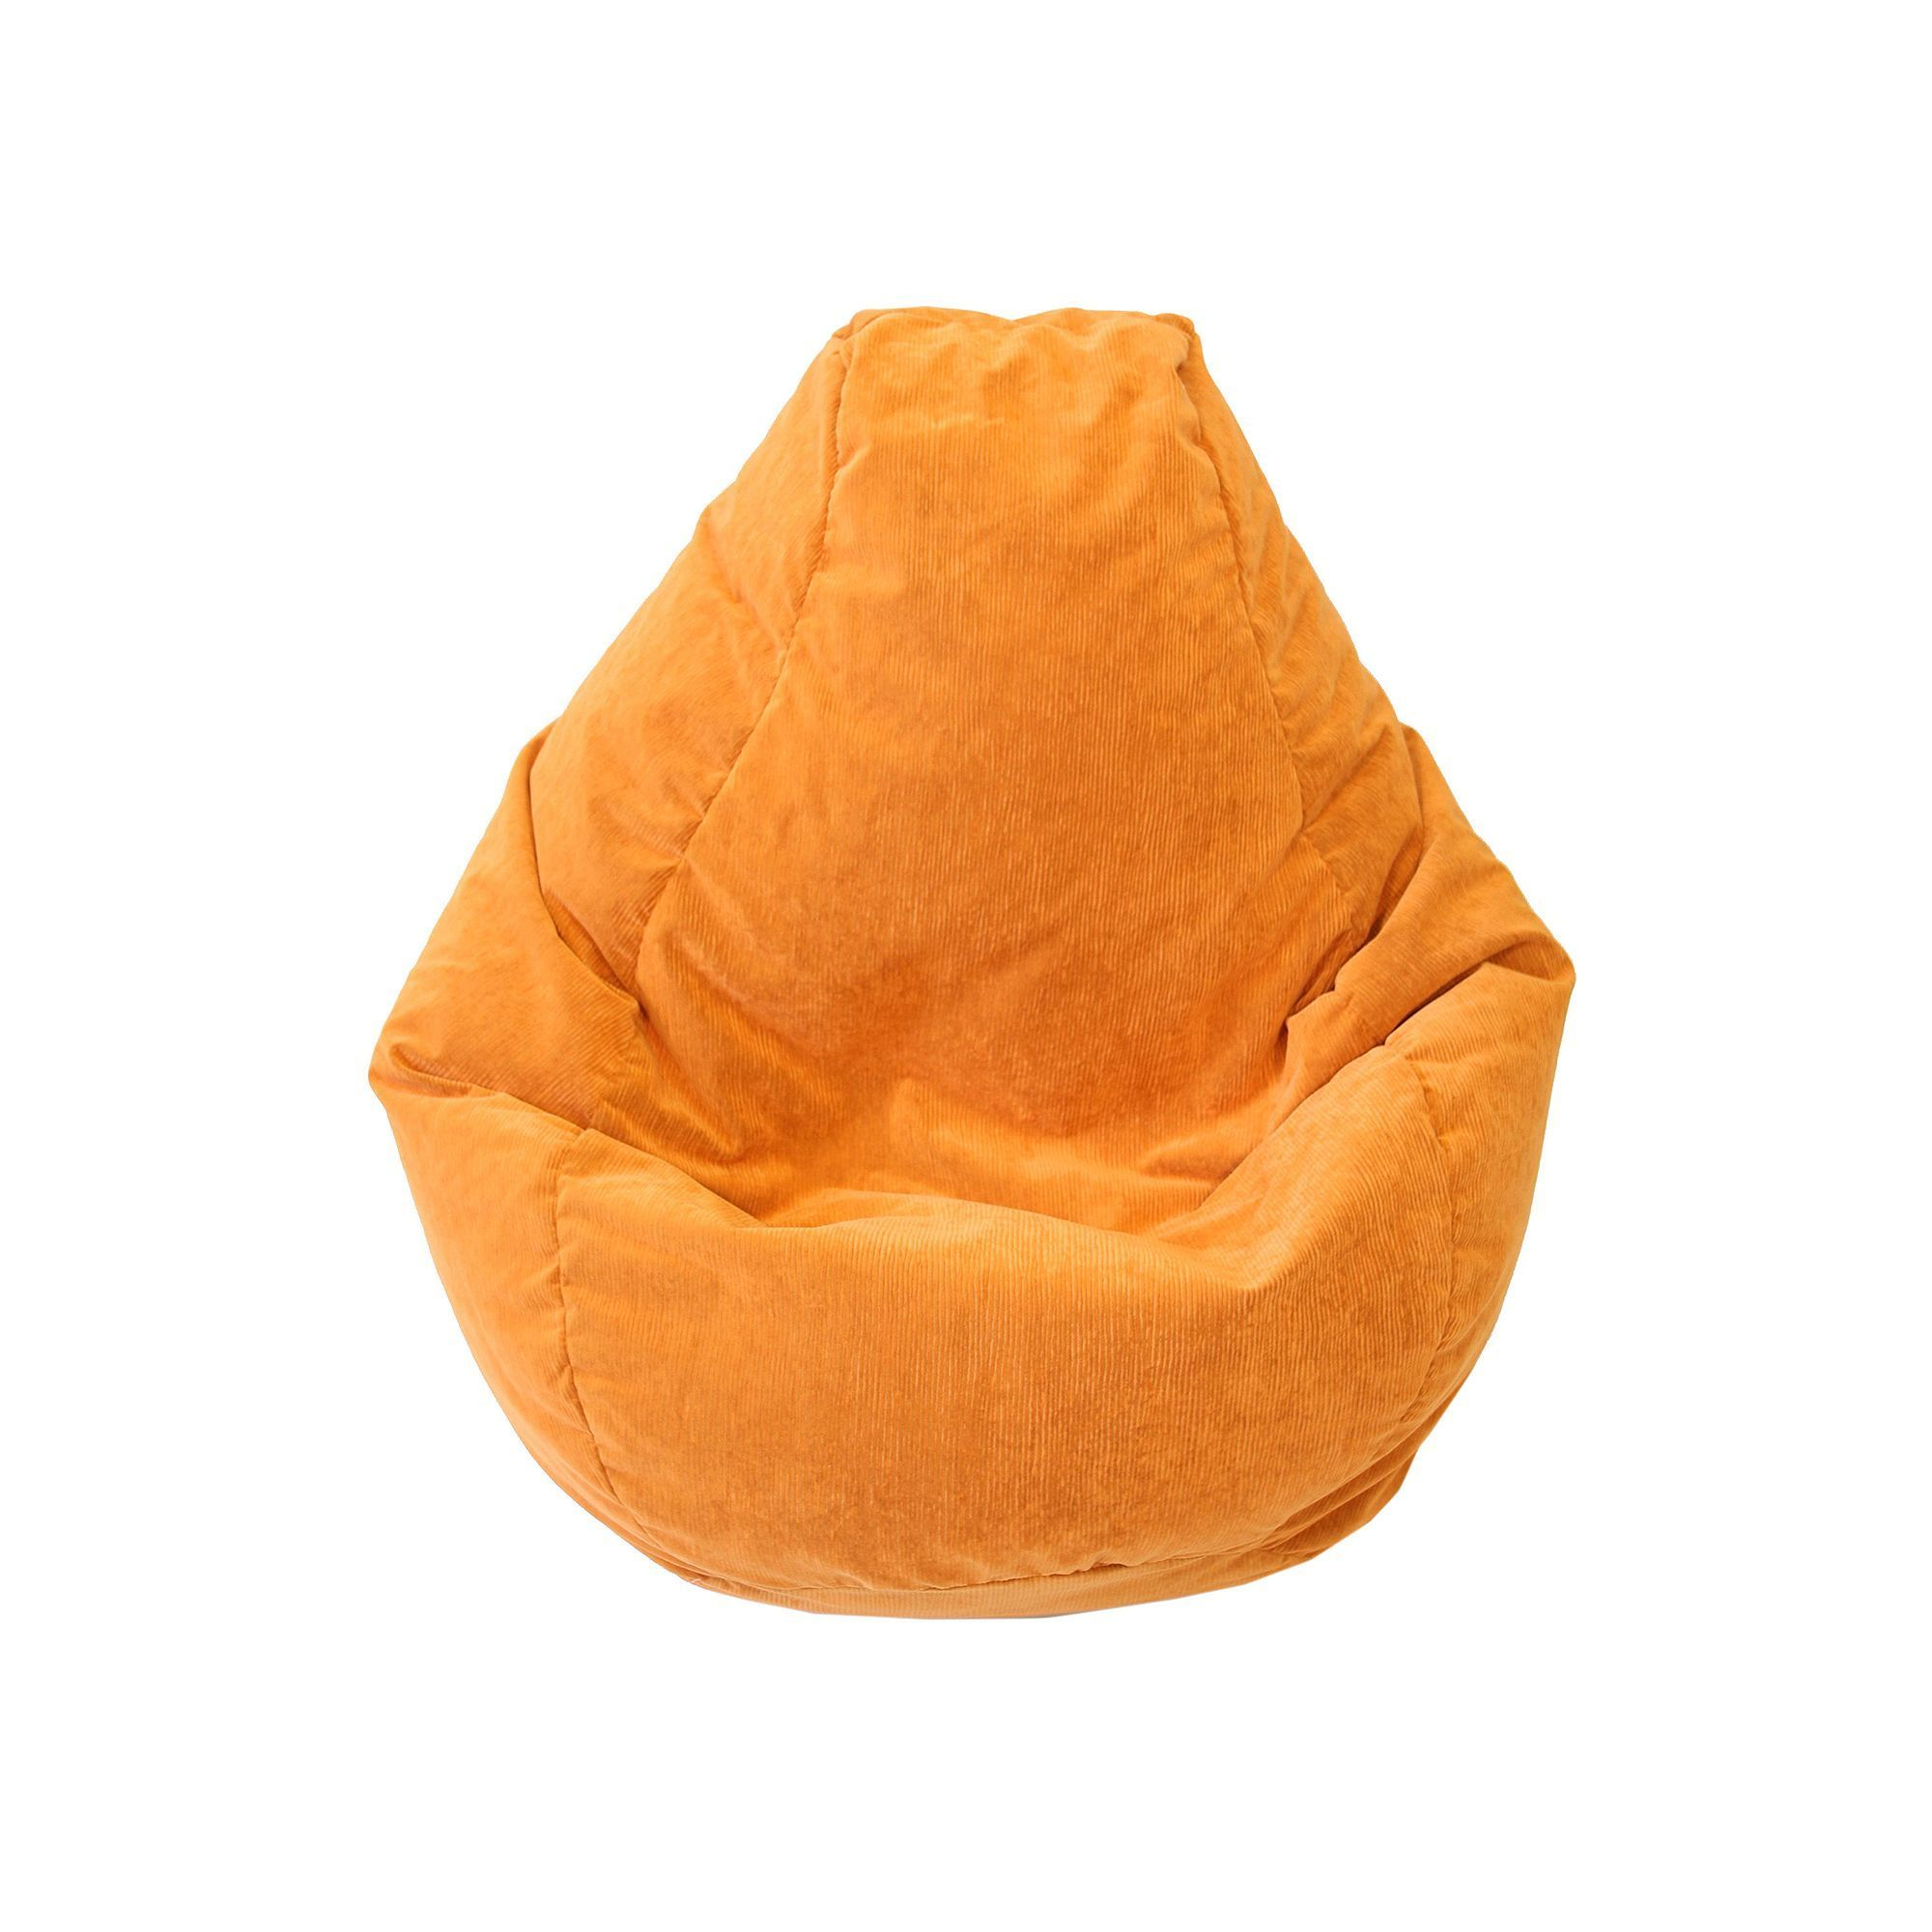 Wondrous Large Teardrop Microfiber Faux Suede Corduroy Bean Bag Chair Gmtry Best Dining Table And Chair Ideas Images Gmtryco